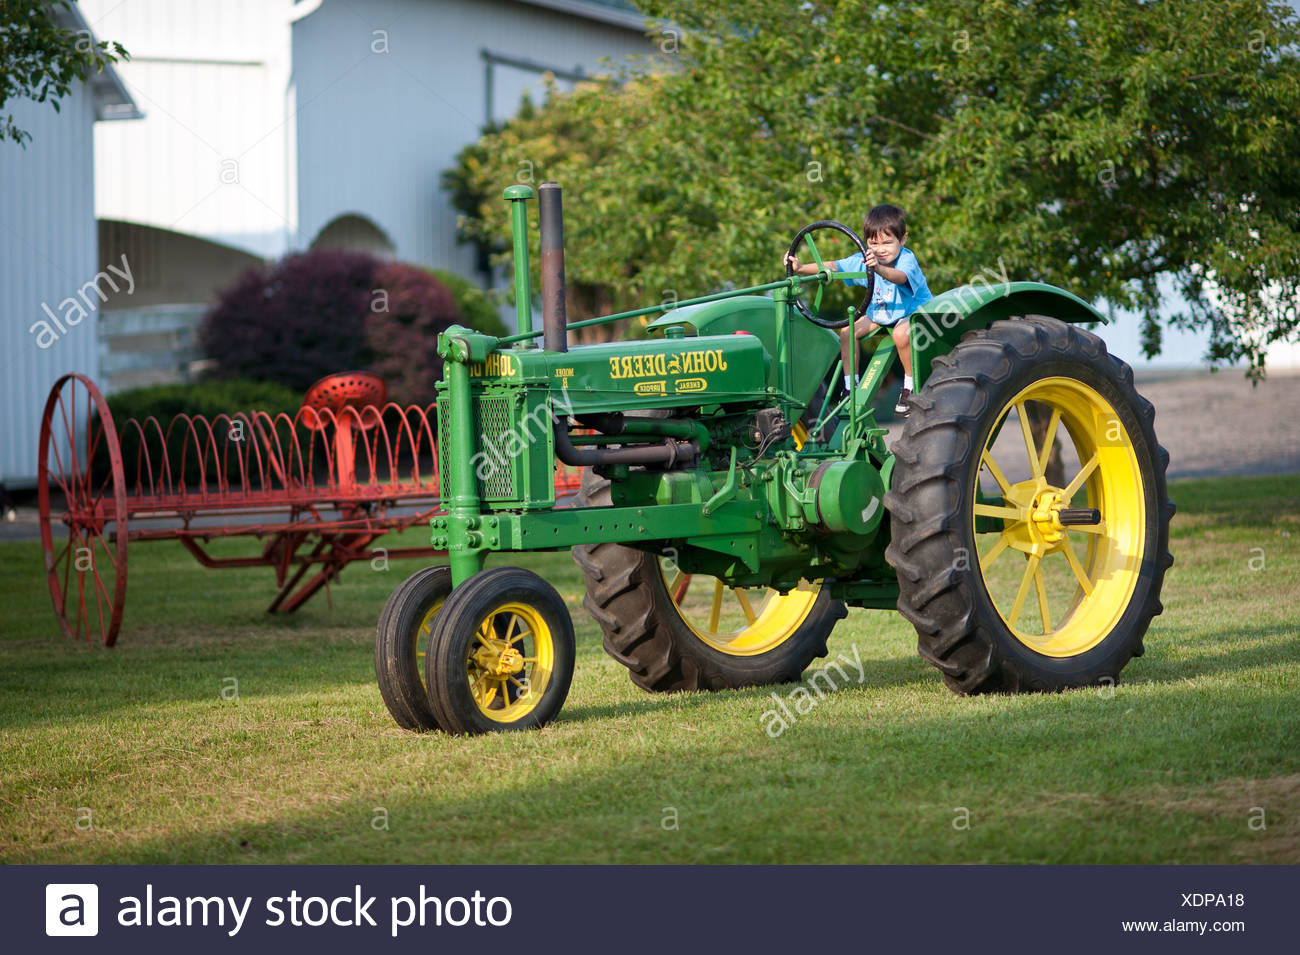 Young boy rides a restored antique John Deere Model B tractor. - Stock Image